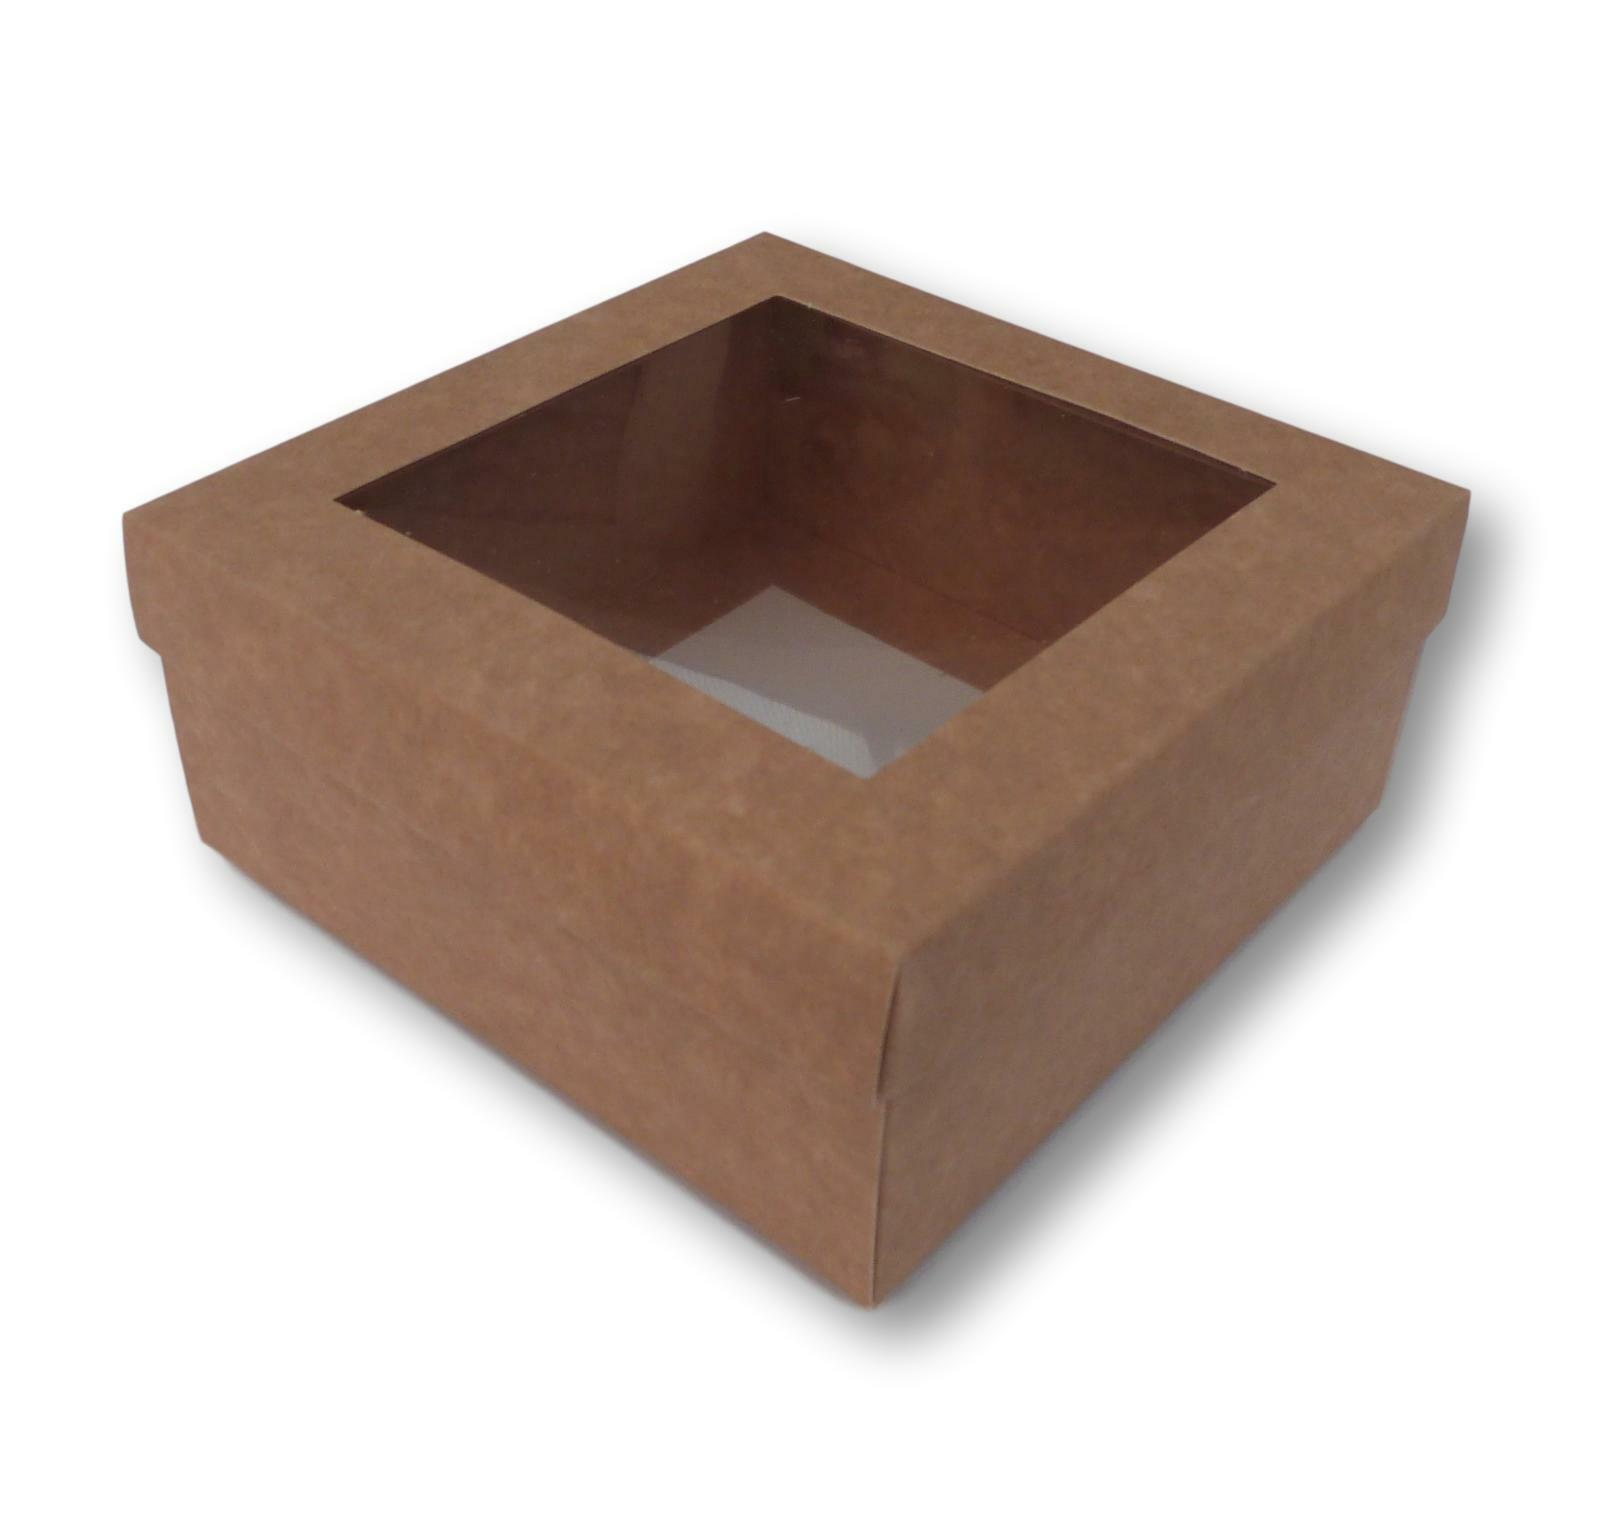 100 KRAFT 5 x 5 5 5 INCH BOX WITH WINDOW LID, GIFTS, GARMENTS, CAKES ETC 9f6741